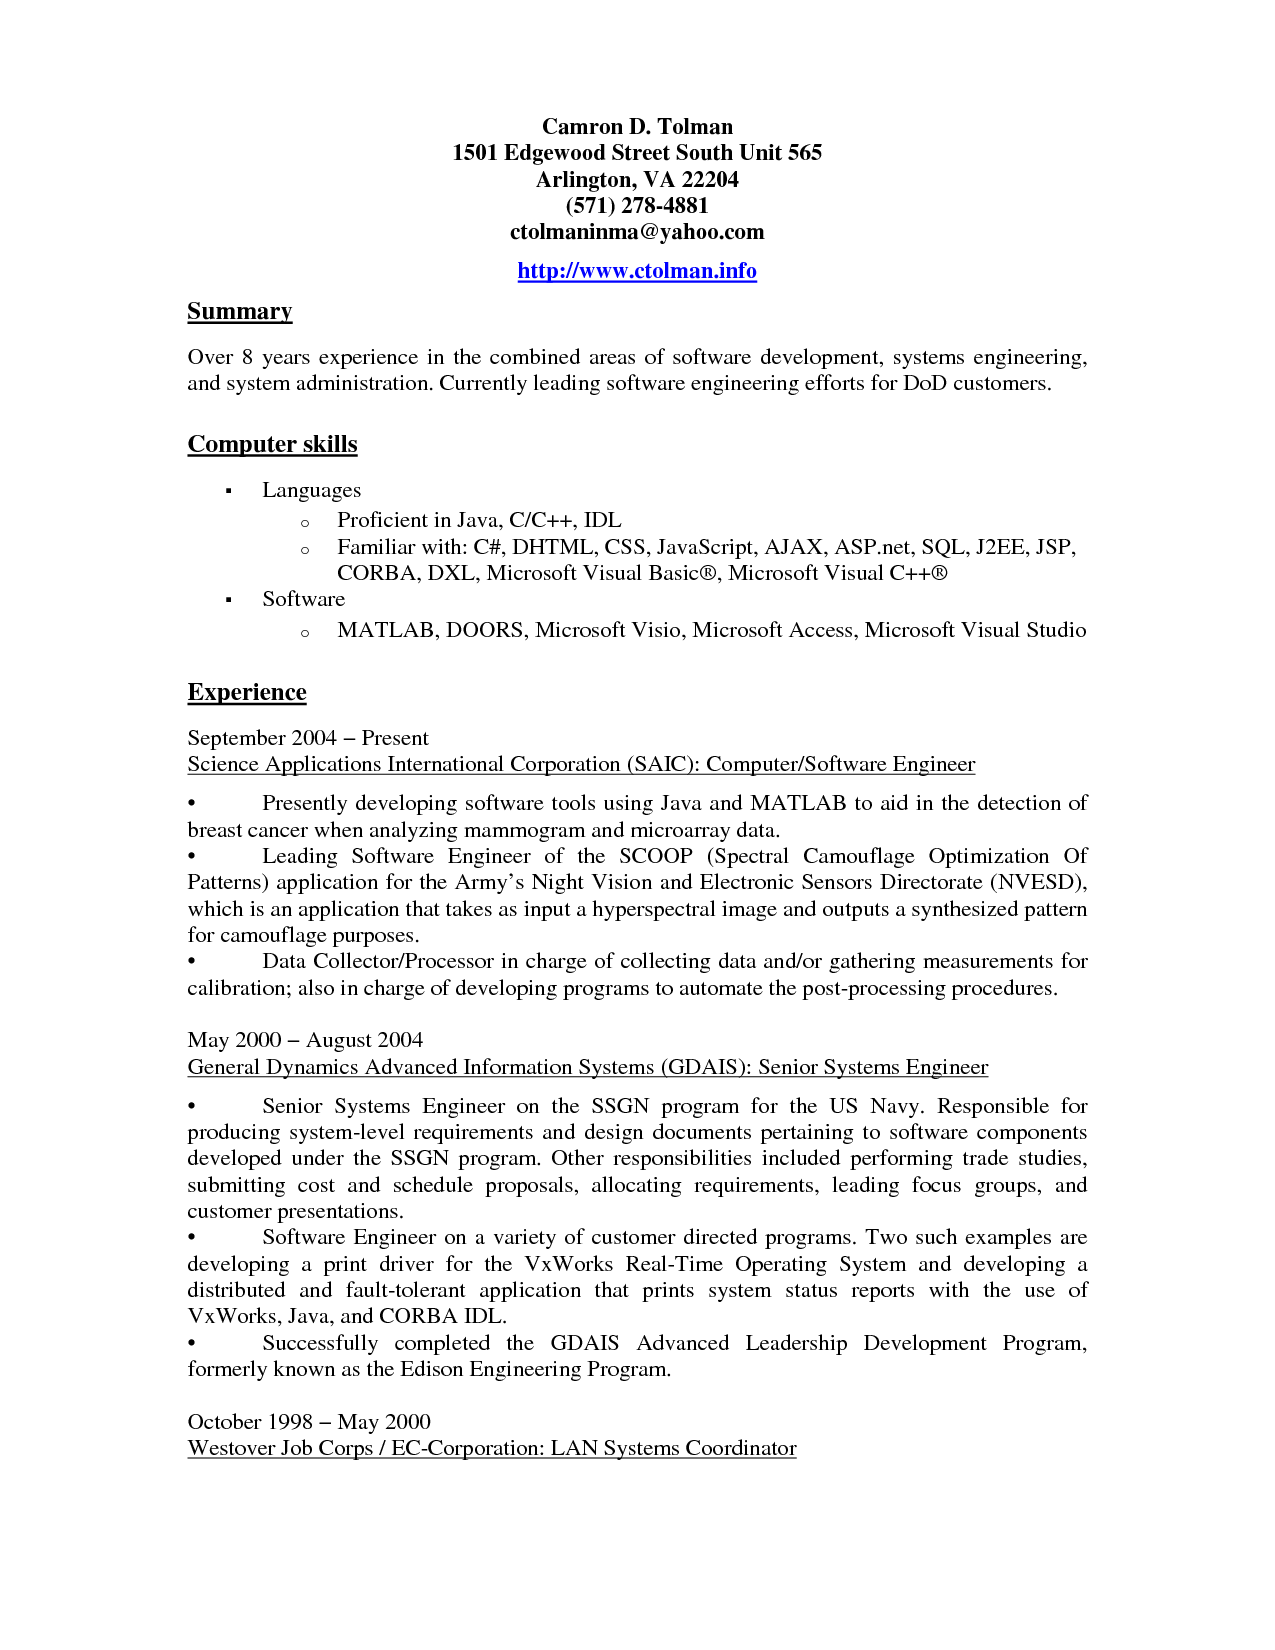 Resume Experience Example Computer Proficiency Resume Sample  Httpwwwresumecareer